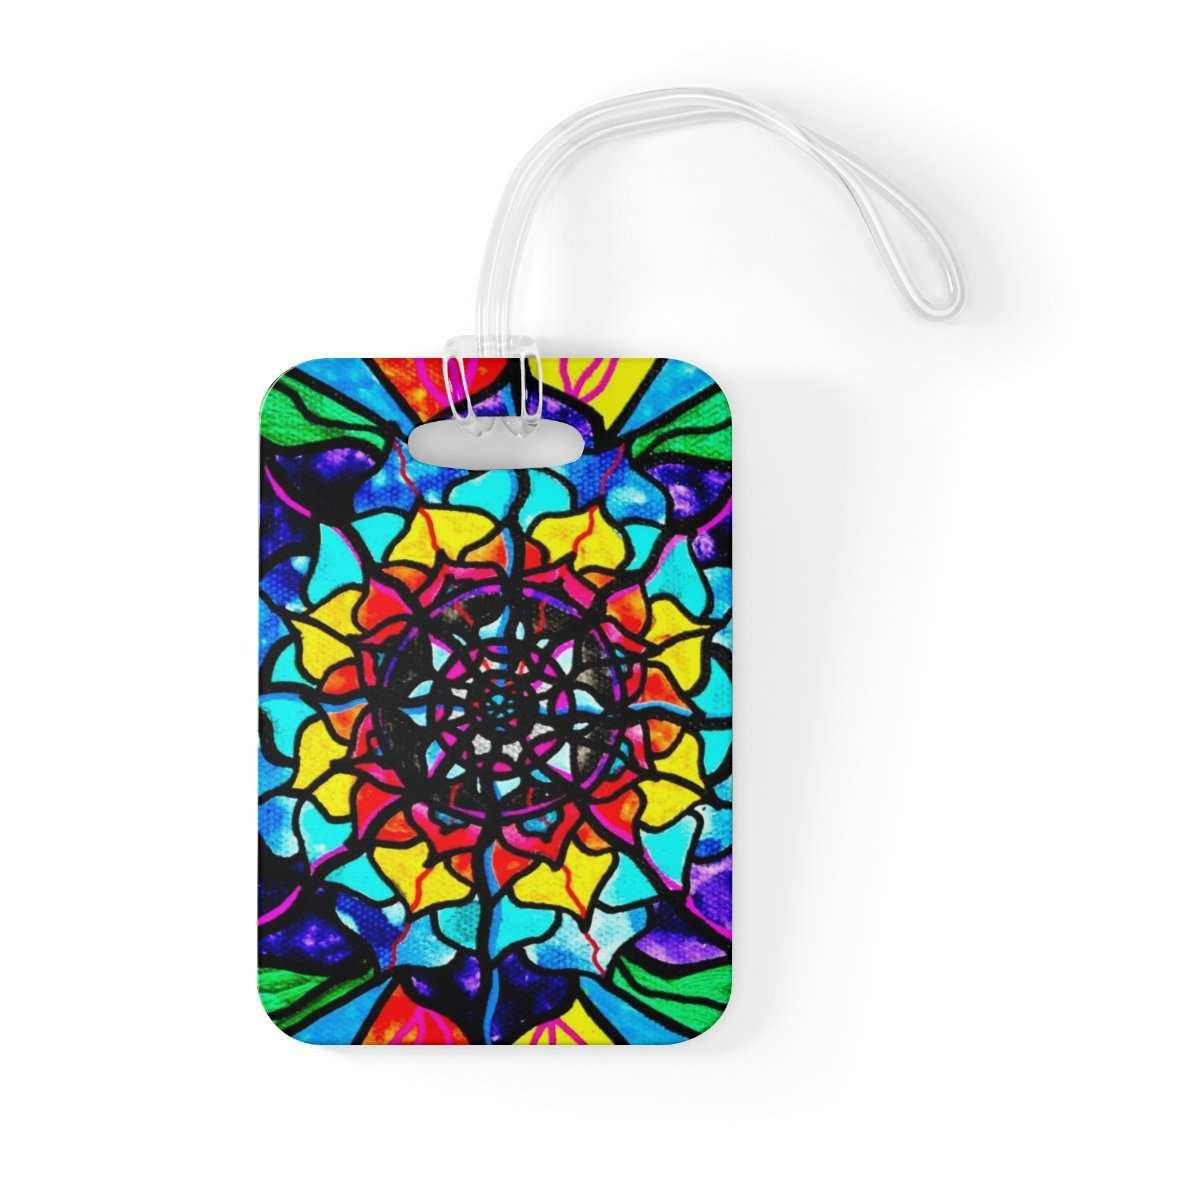 Personal Expansion - Bag Tag